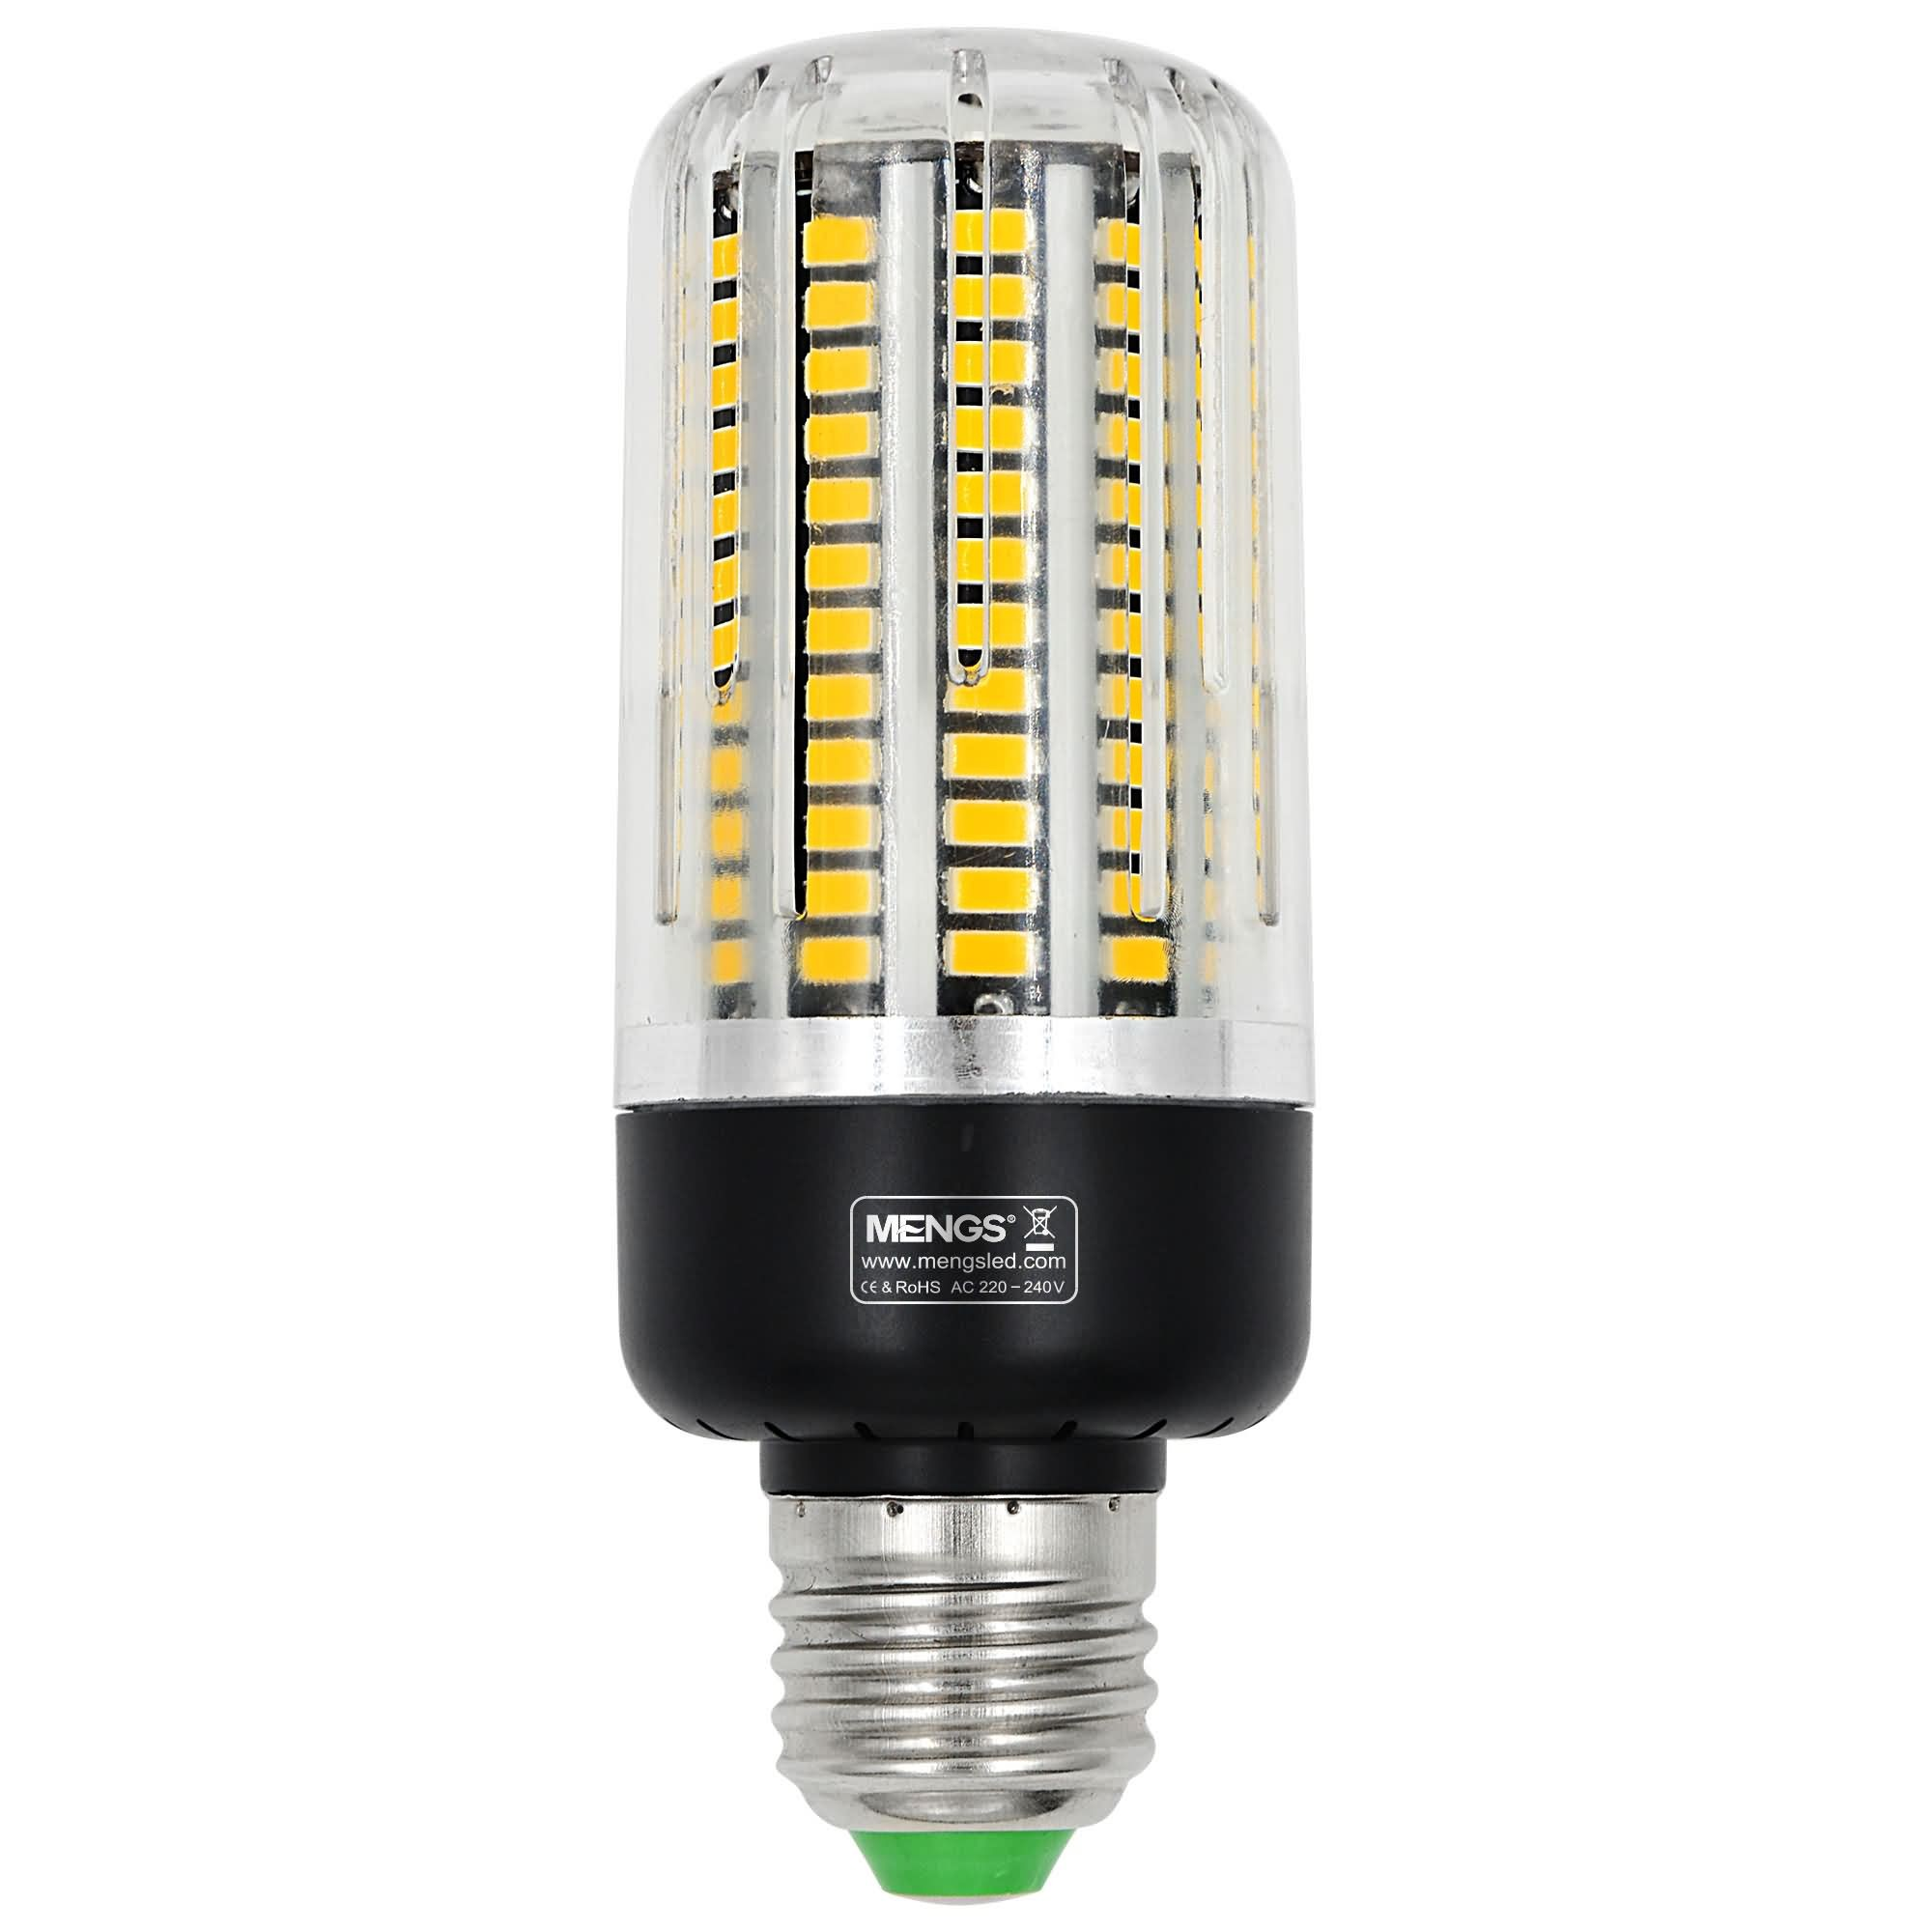 Mengsled Mengs E27 18w Led Corn Light 132x 5730 Smd With Heat Sink Led Bulb Lamp In Warm